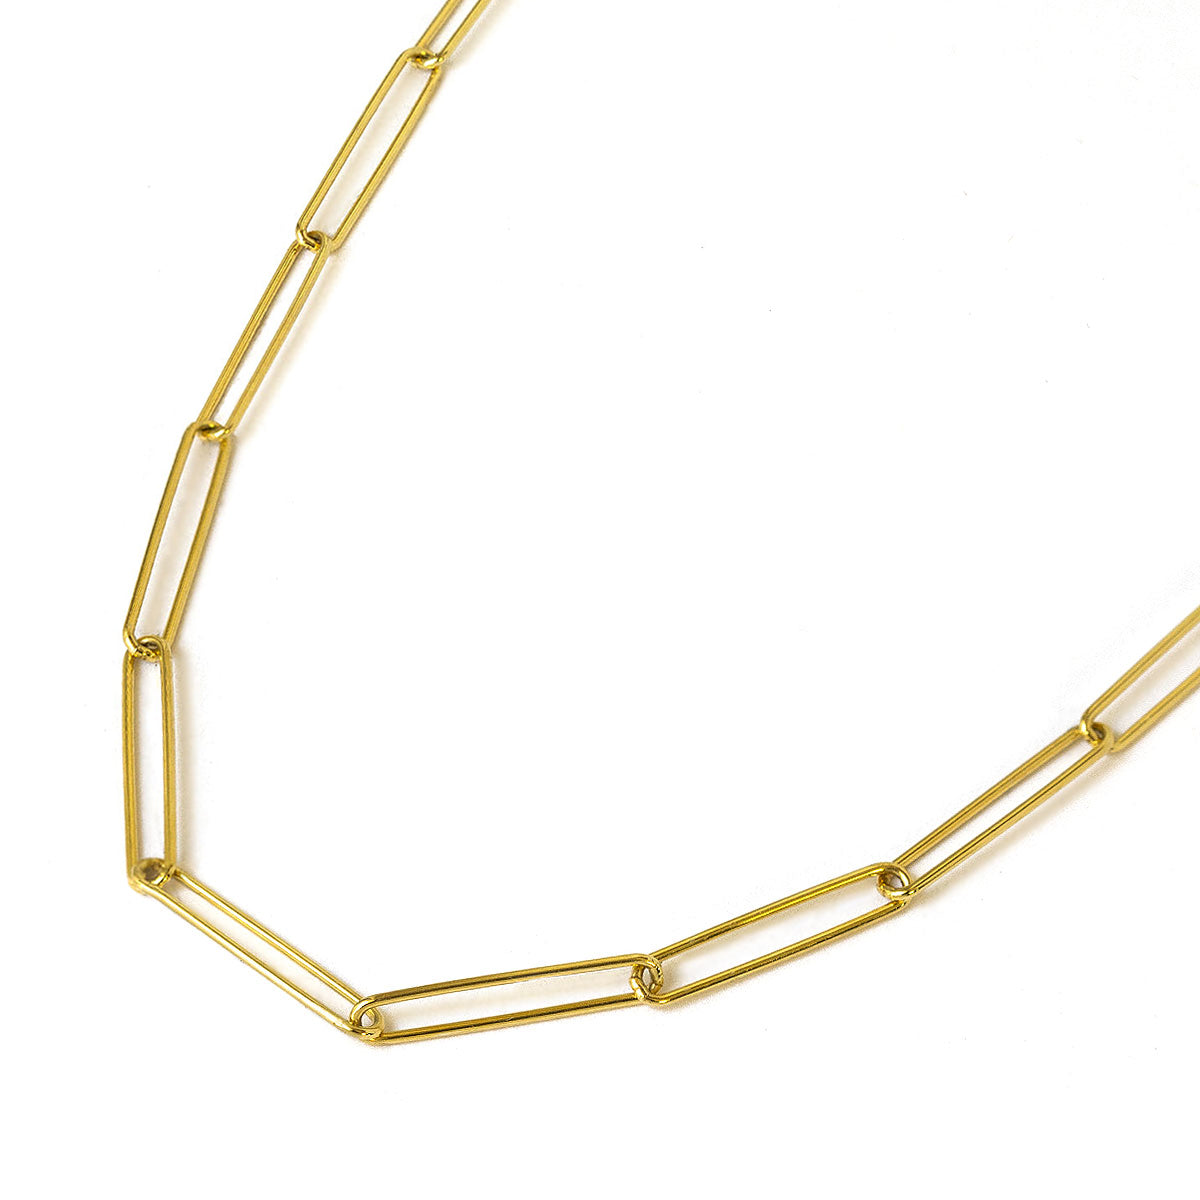 Gold Vermeil Long Link Chain Necklace